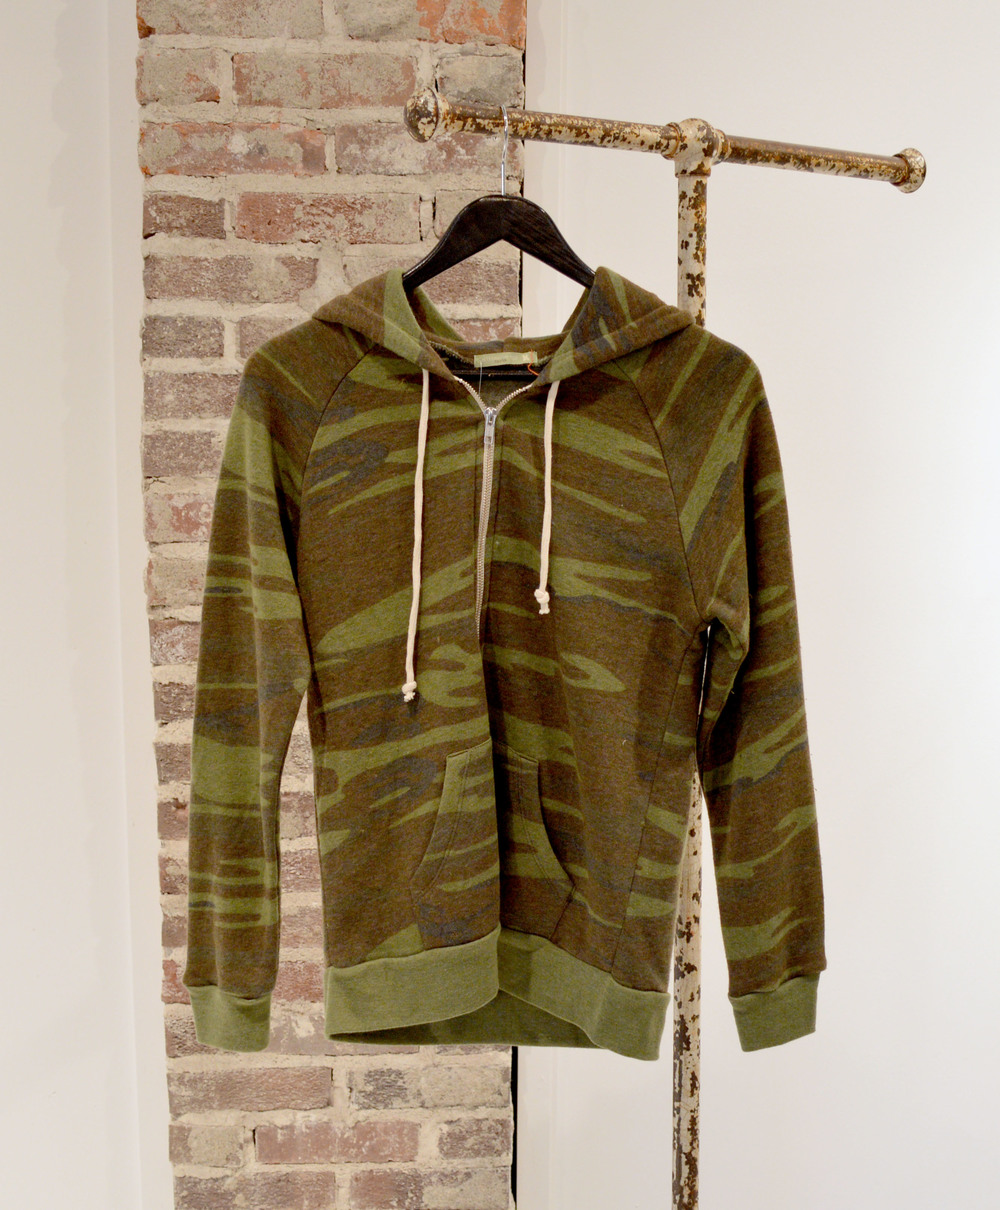 We are loving the camo print right now, we have this same hoodie in a solid, heathered wine color as well!